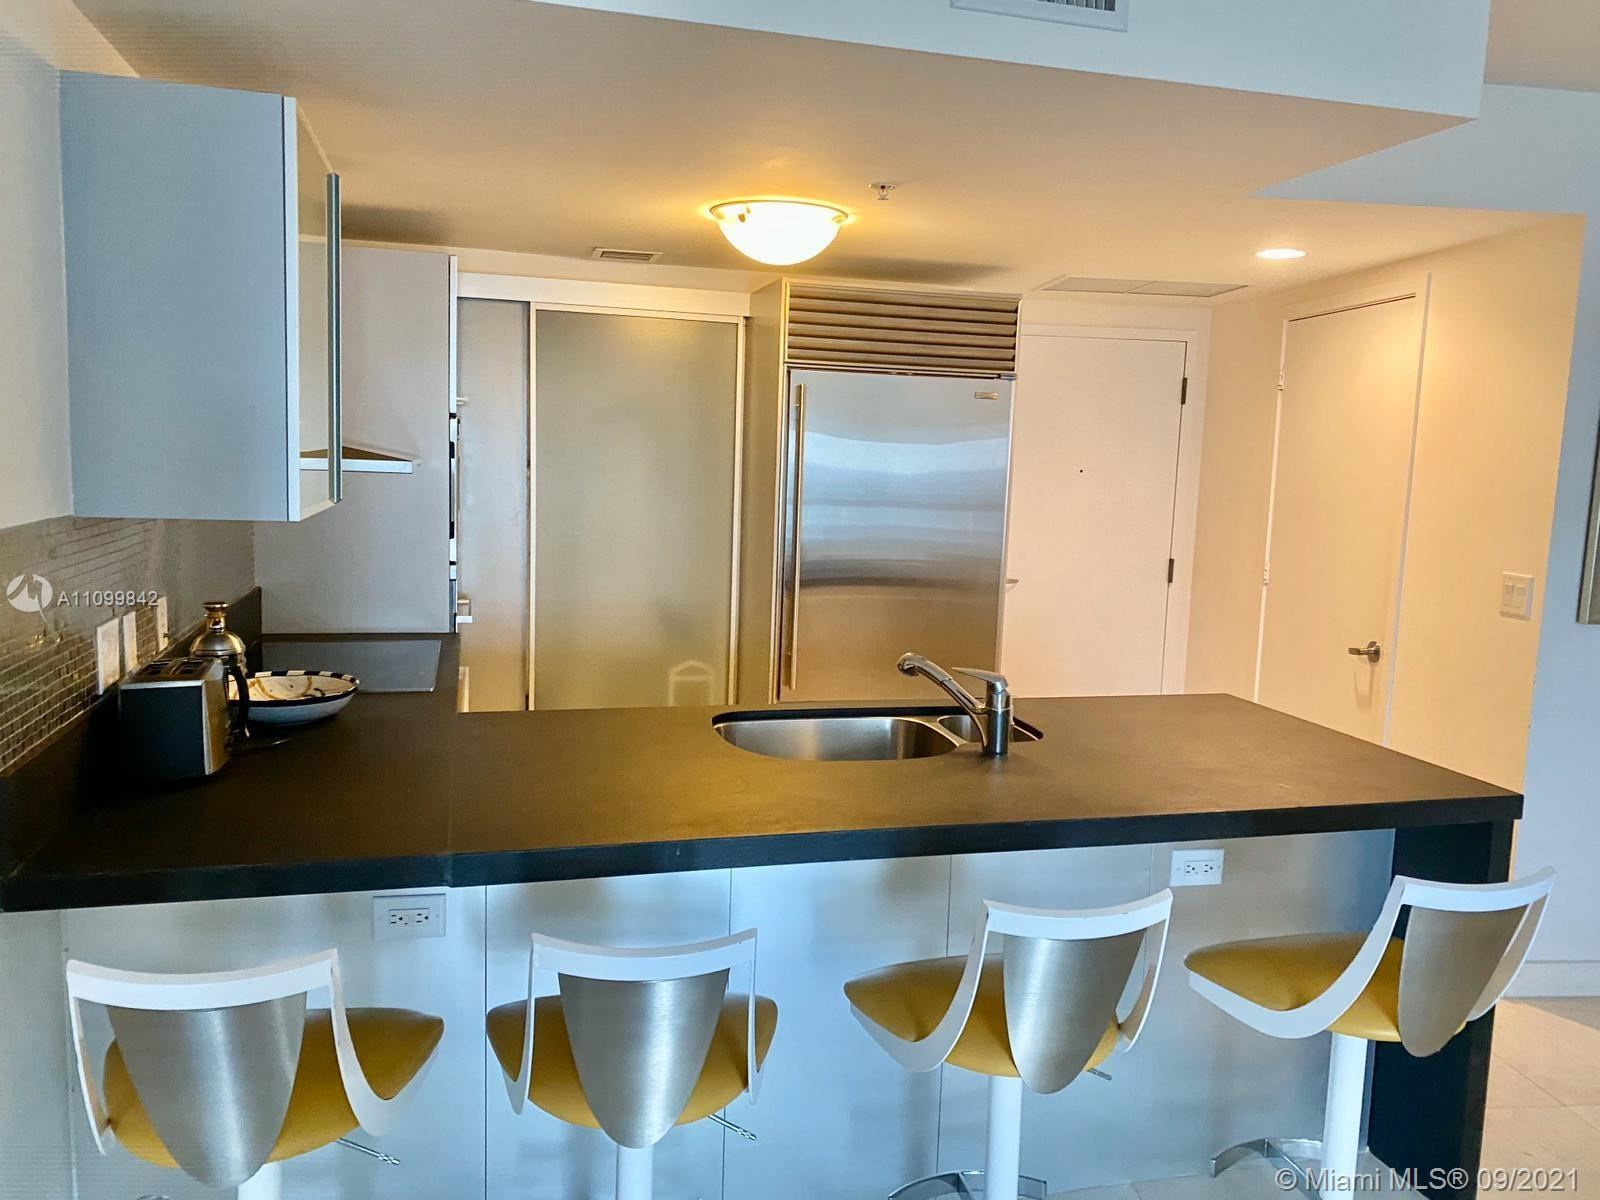 18201 Collins Ave #5208, Sunny Isles, FL 33160 - #: A11099842